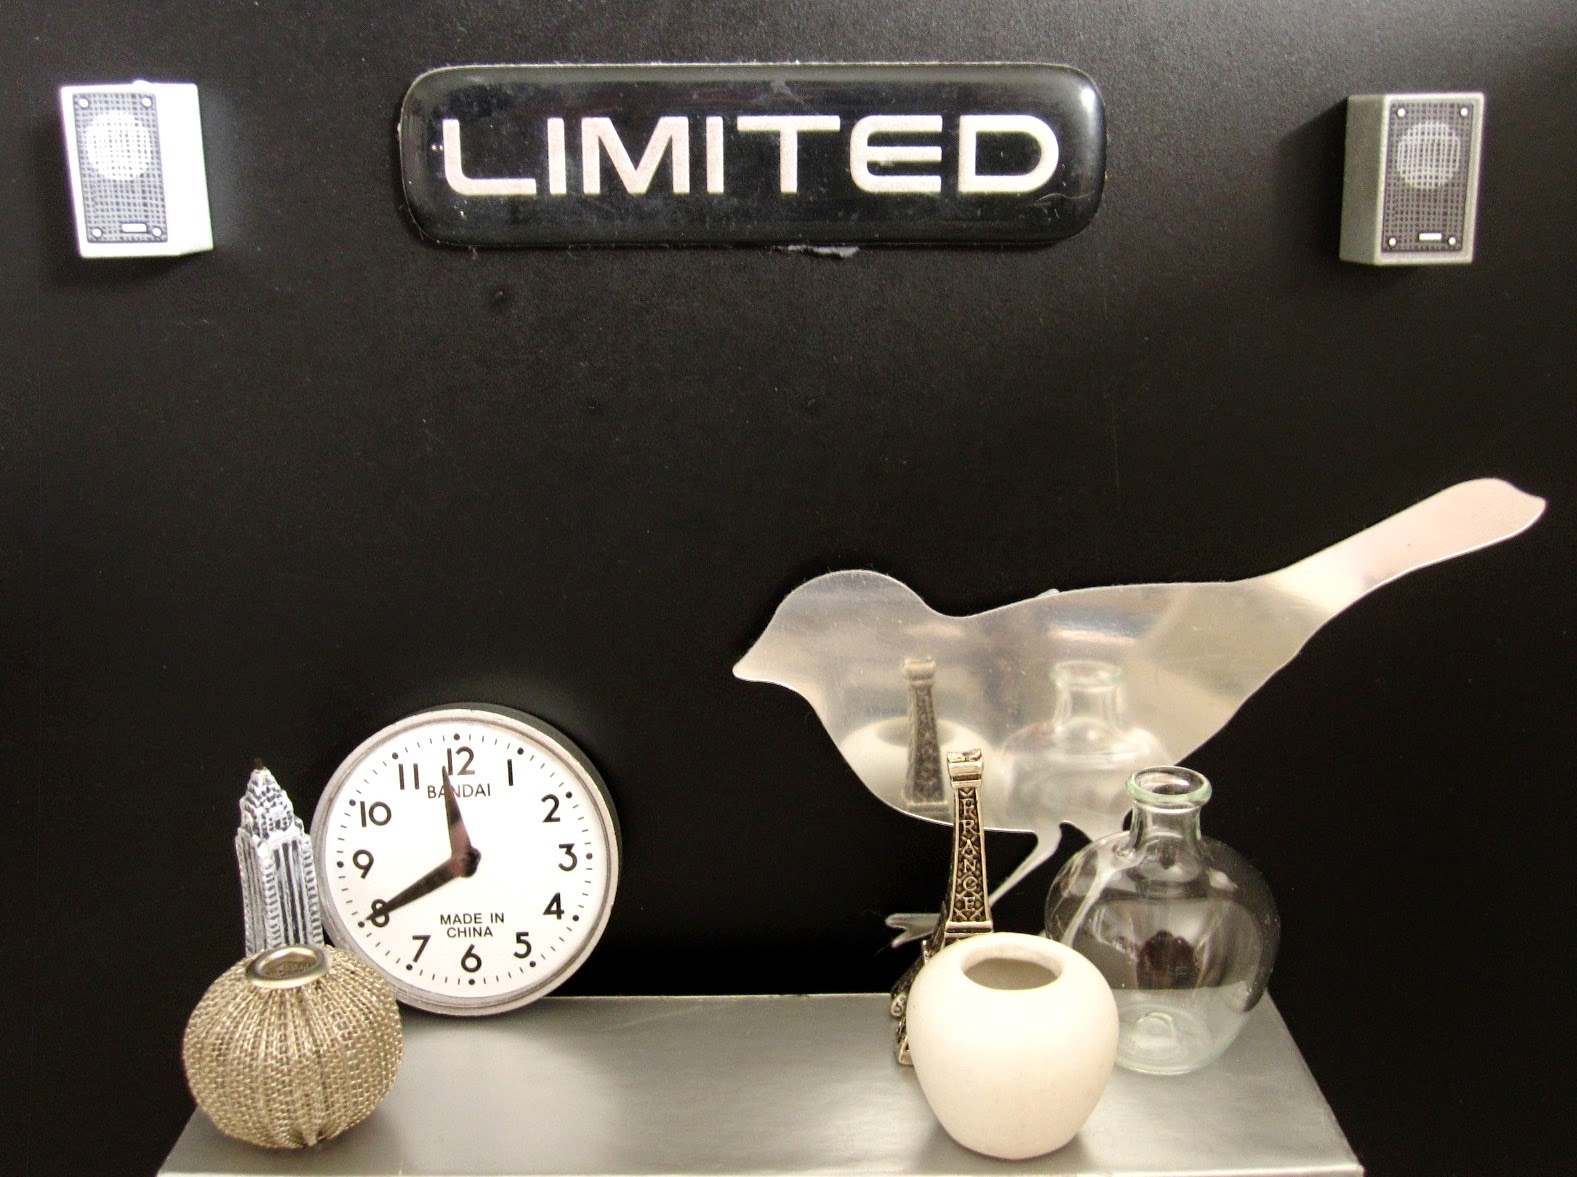 Modern dolls' house scene of a selection of grey, white and silver decoative items displayed on an industrial grey bench against a black wall. On the wall are to stereo speakers and a sign saying 'Limited'